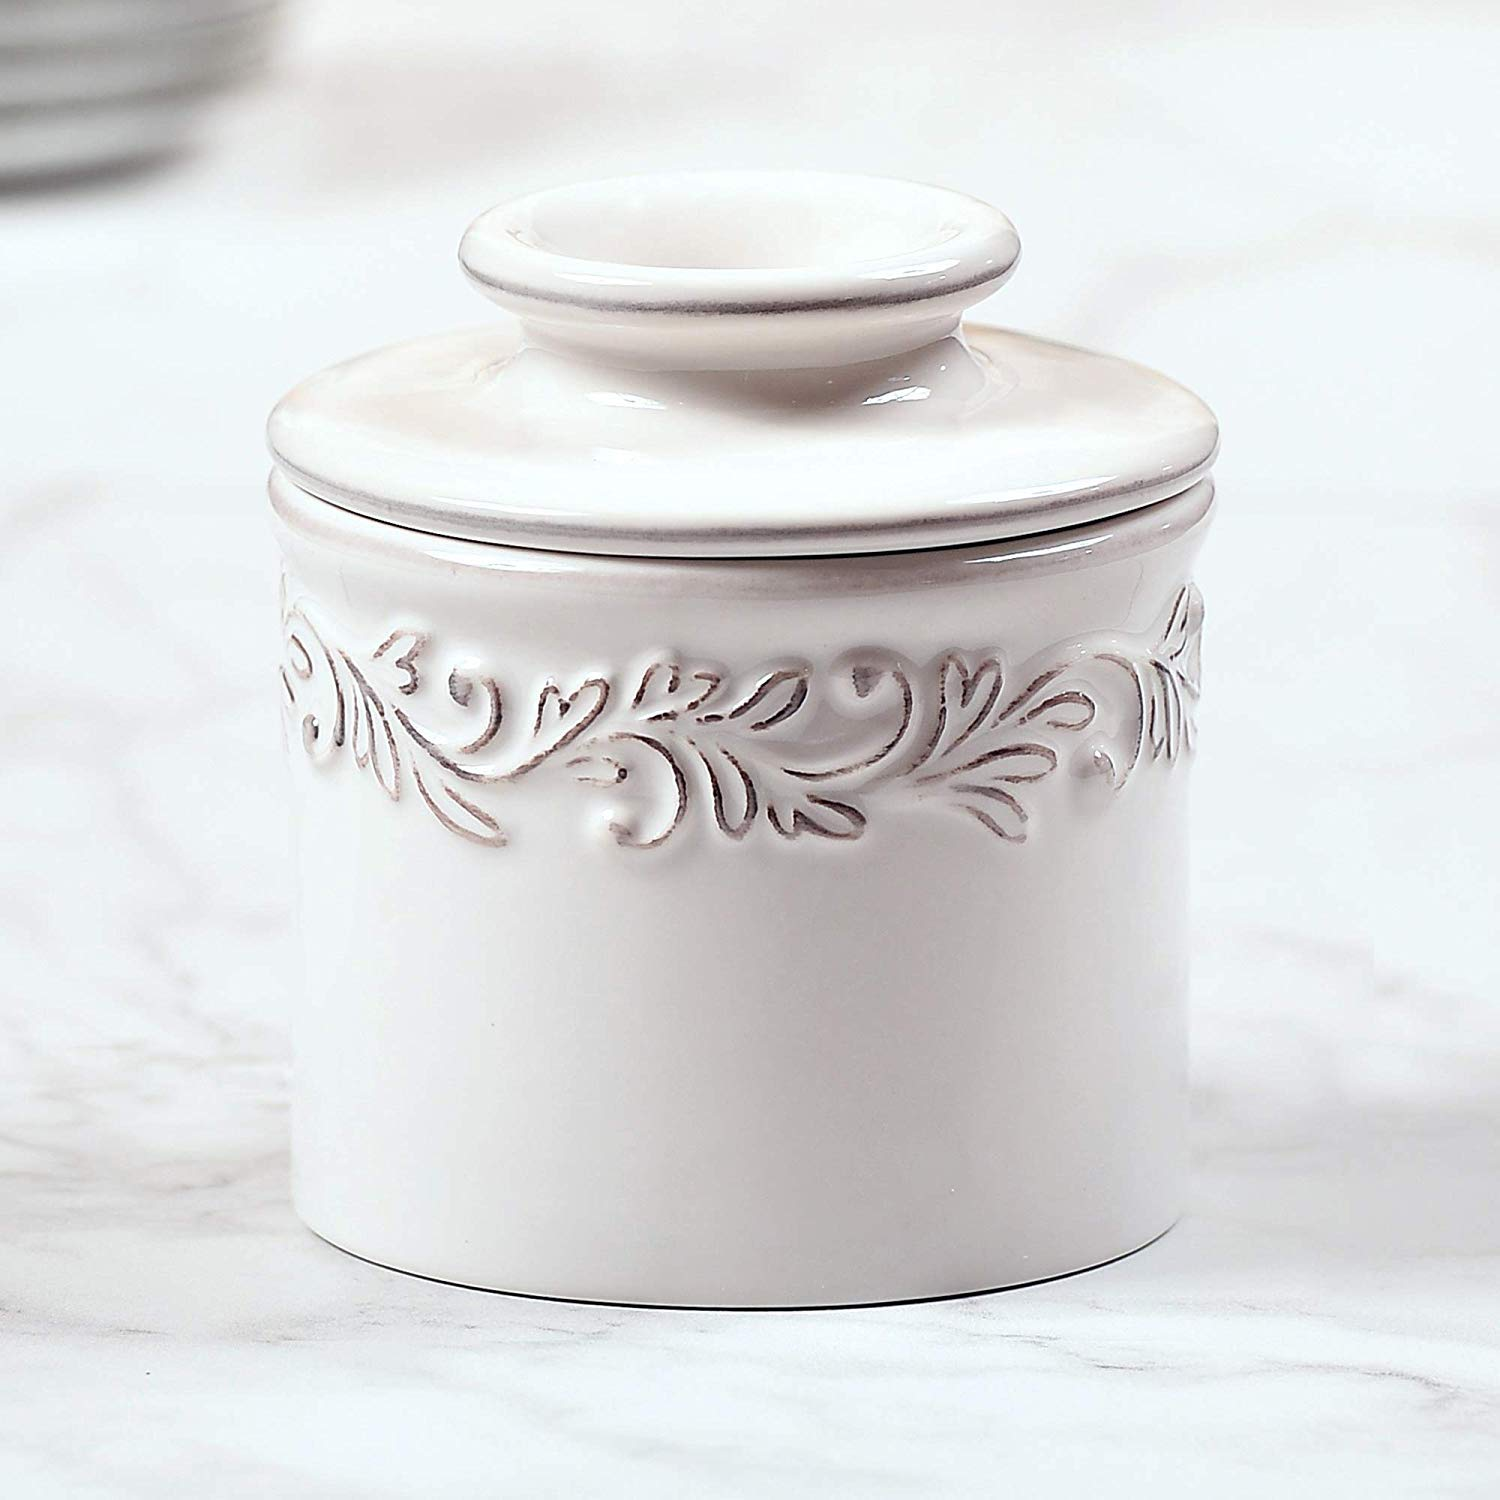 Antique Collection Tremain French Ceramic Butter Dish The Original Butter Bell Crock by L Butter Bell White Linen